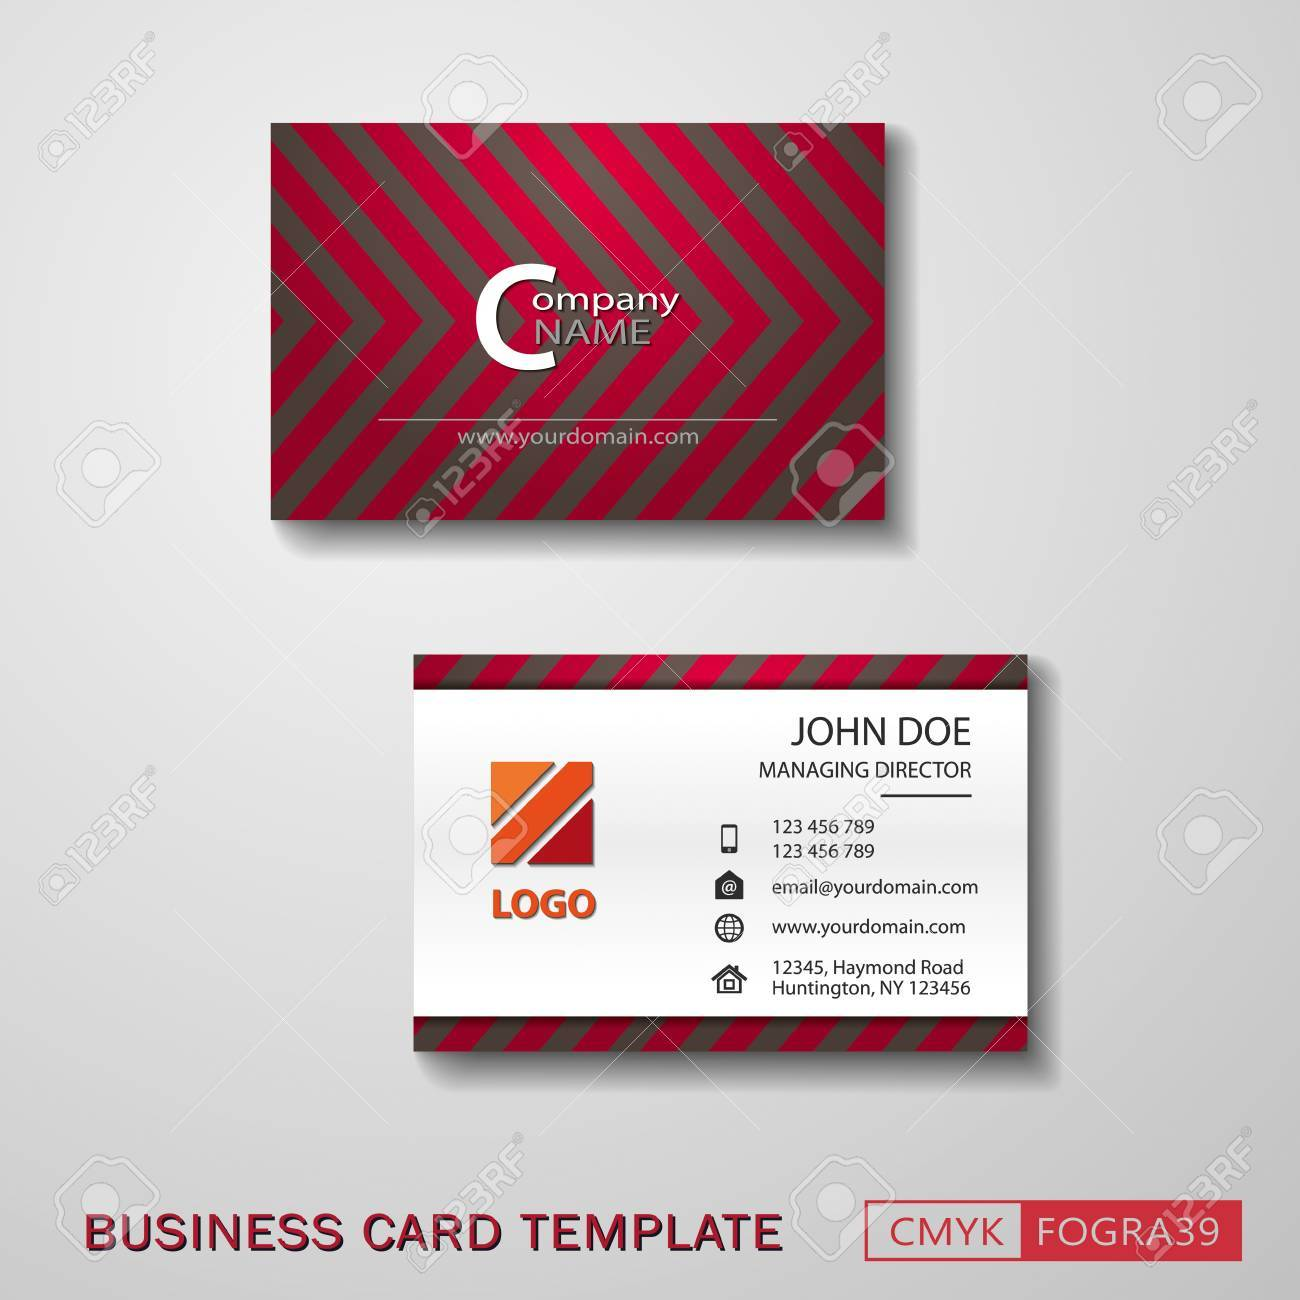 Vcard business card set royalty free cliparts vectors and stock vcard business card set stock vector 60951910 colourmoves